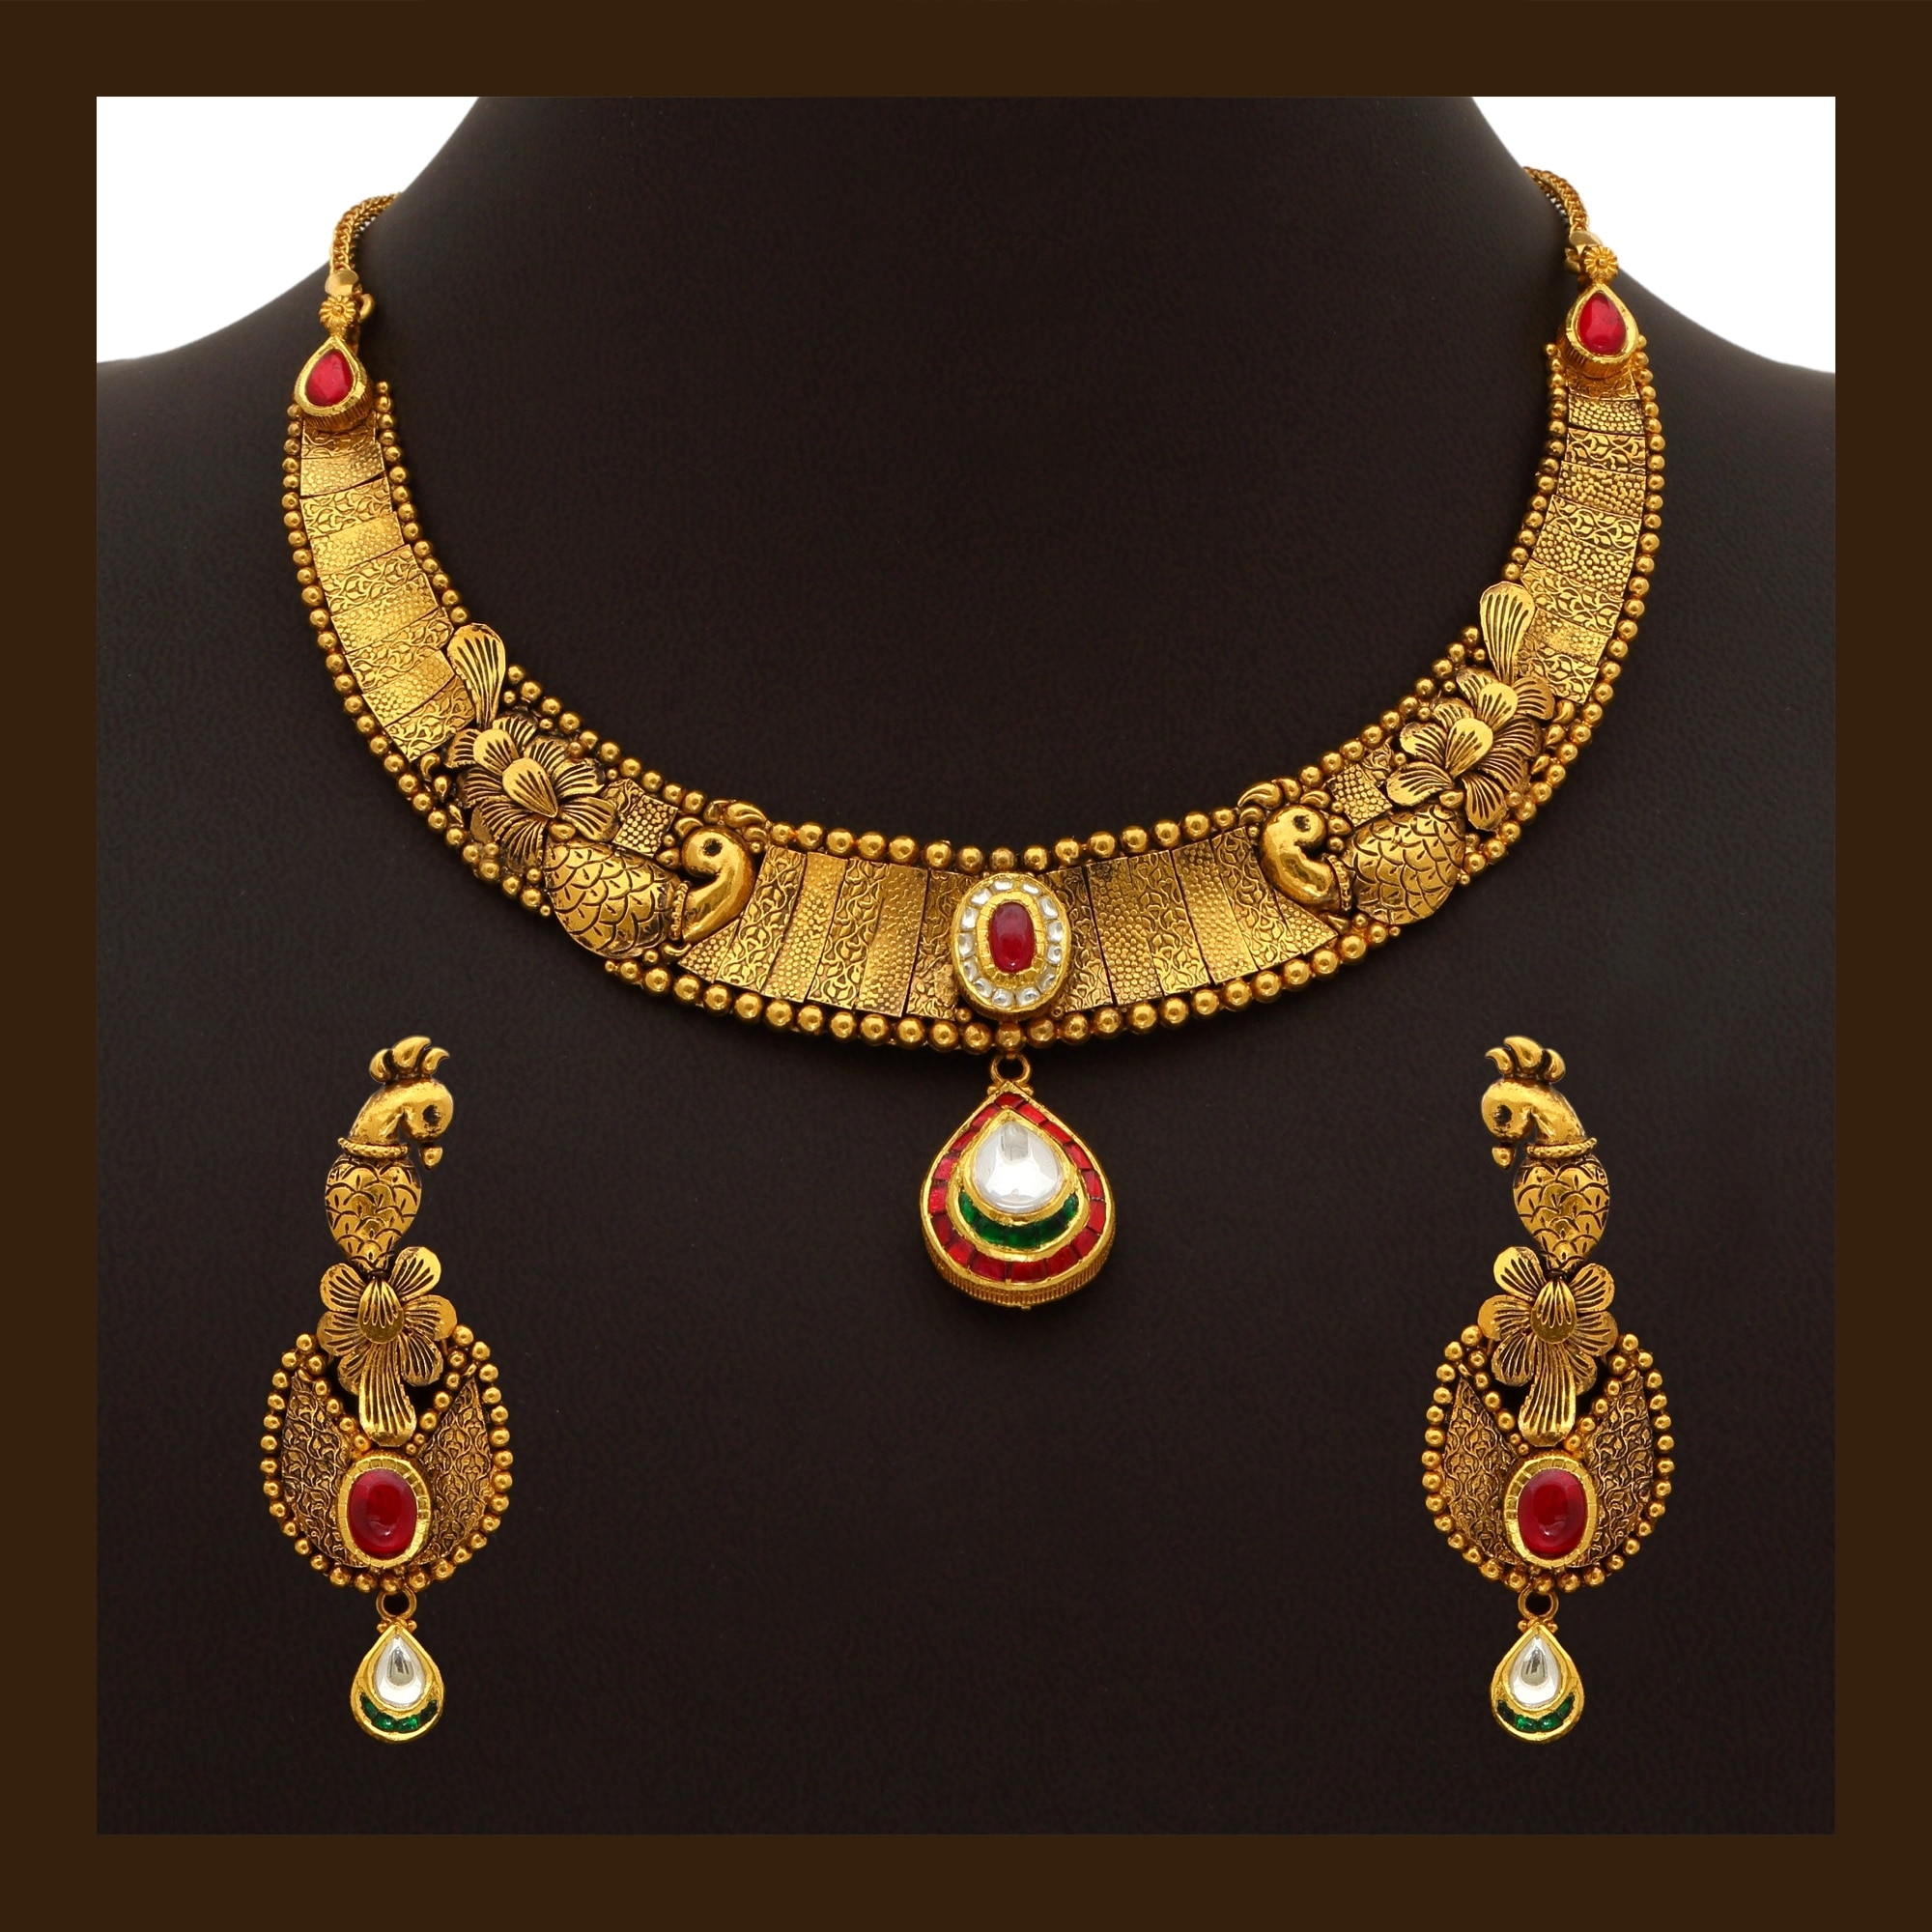 Buy 916 Gold Necklace Hallmarked For 20% lesser than MRP